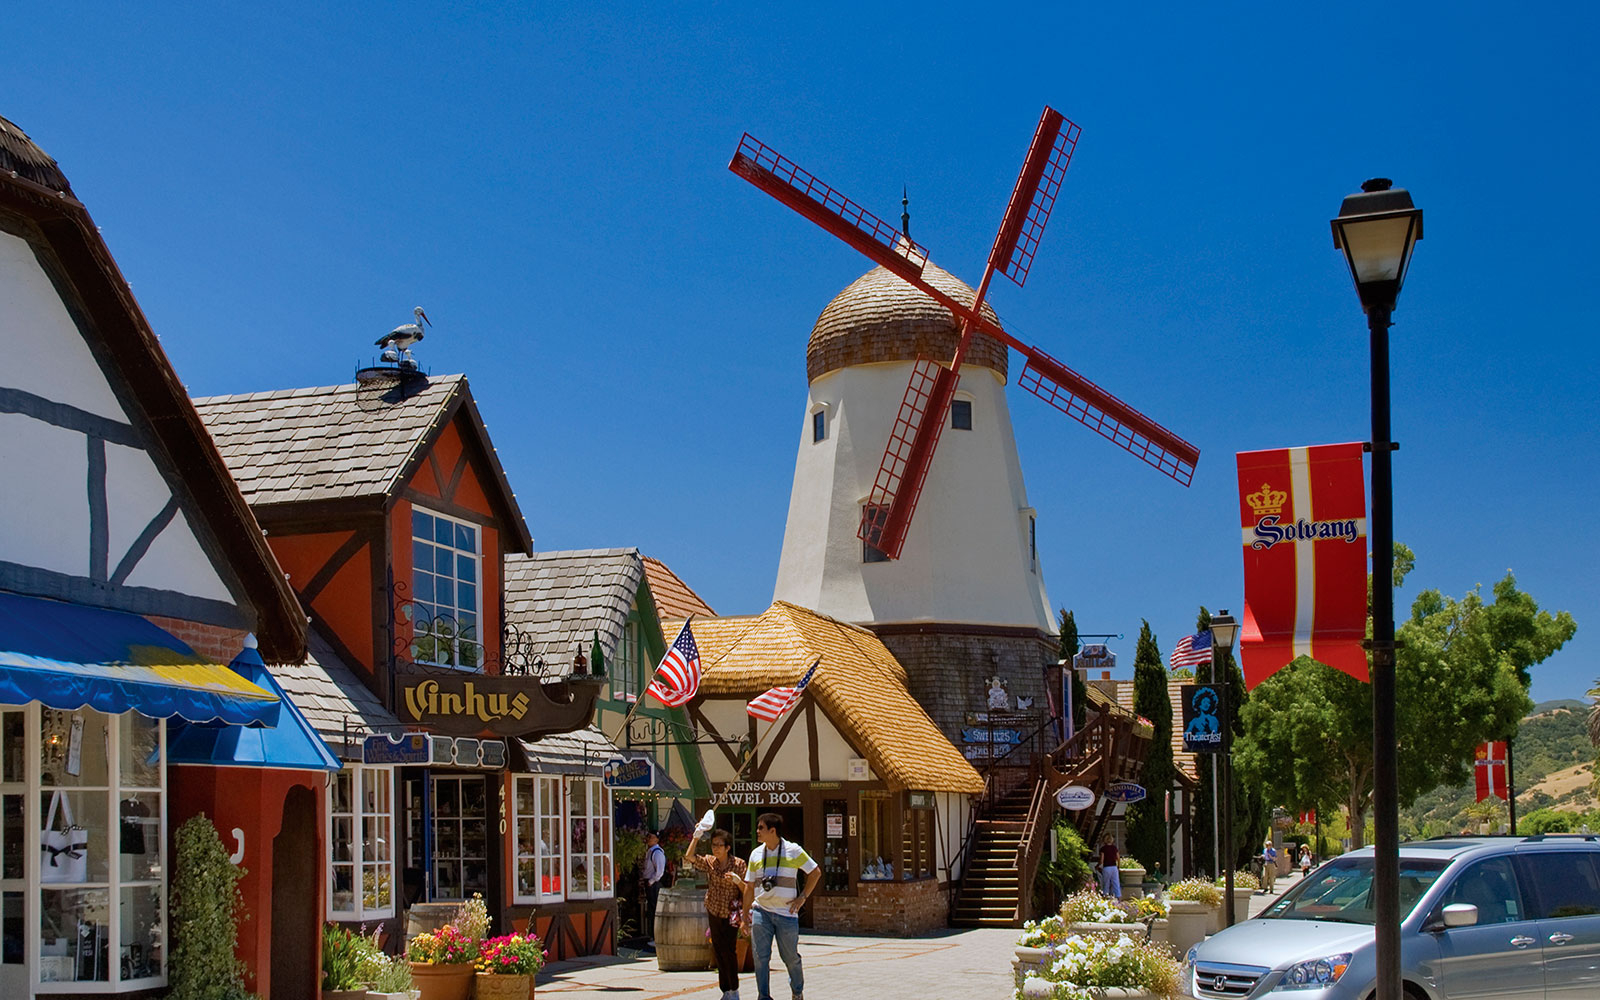 6:30 p.m.: Explore the Danish town of Solvang